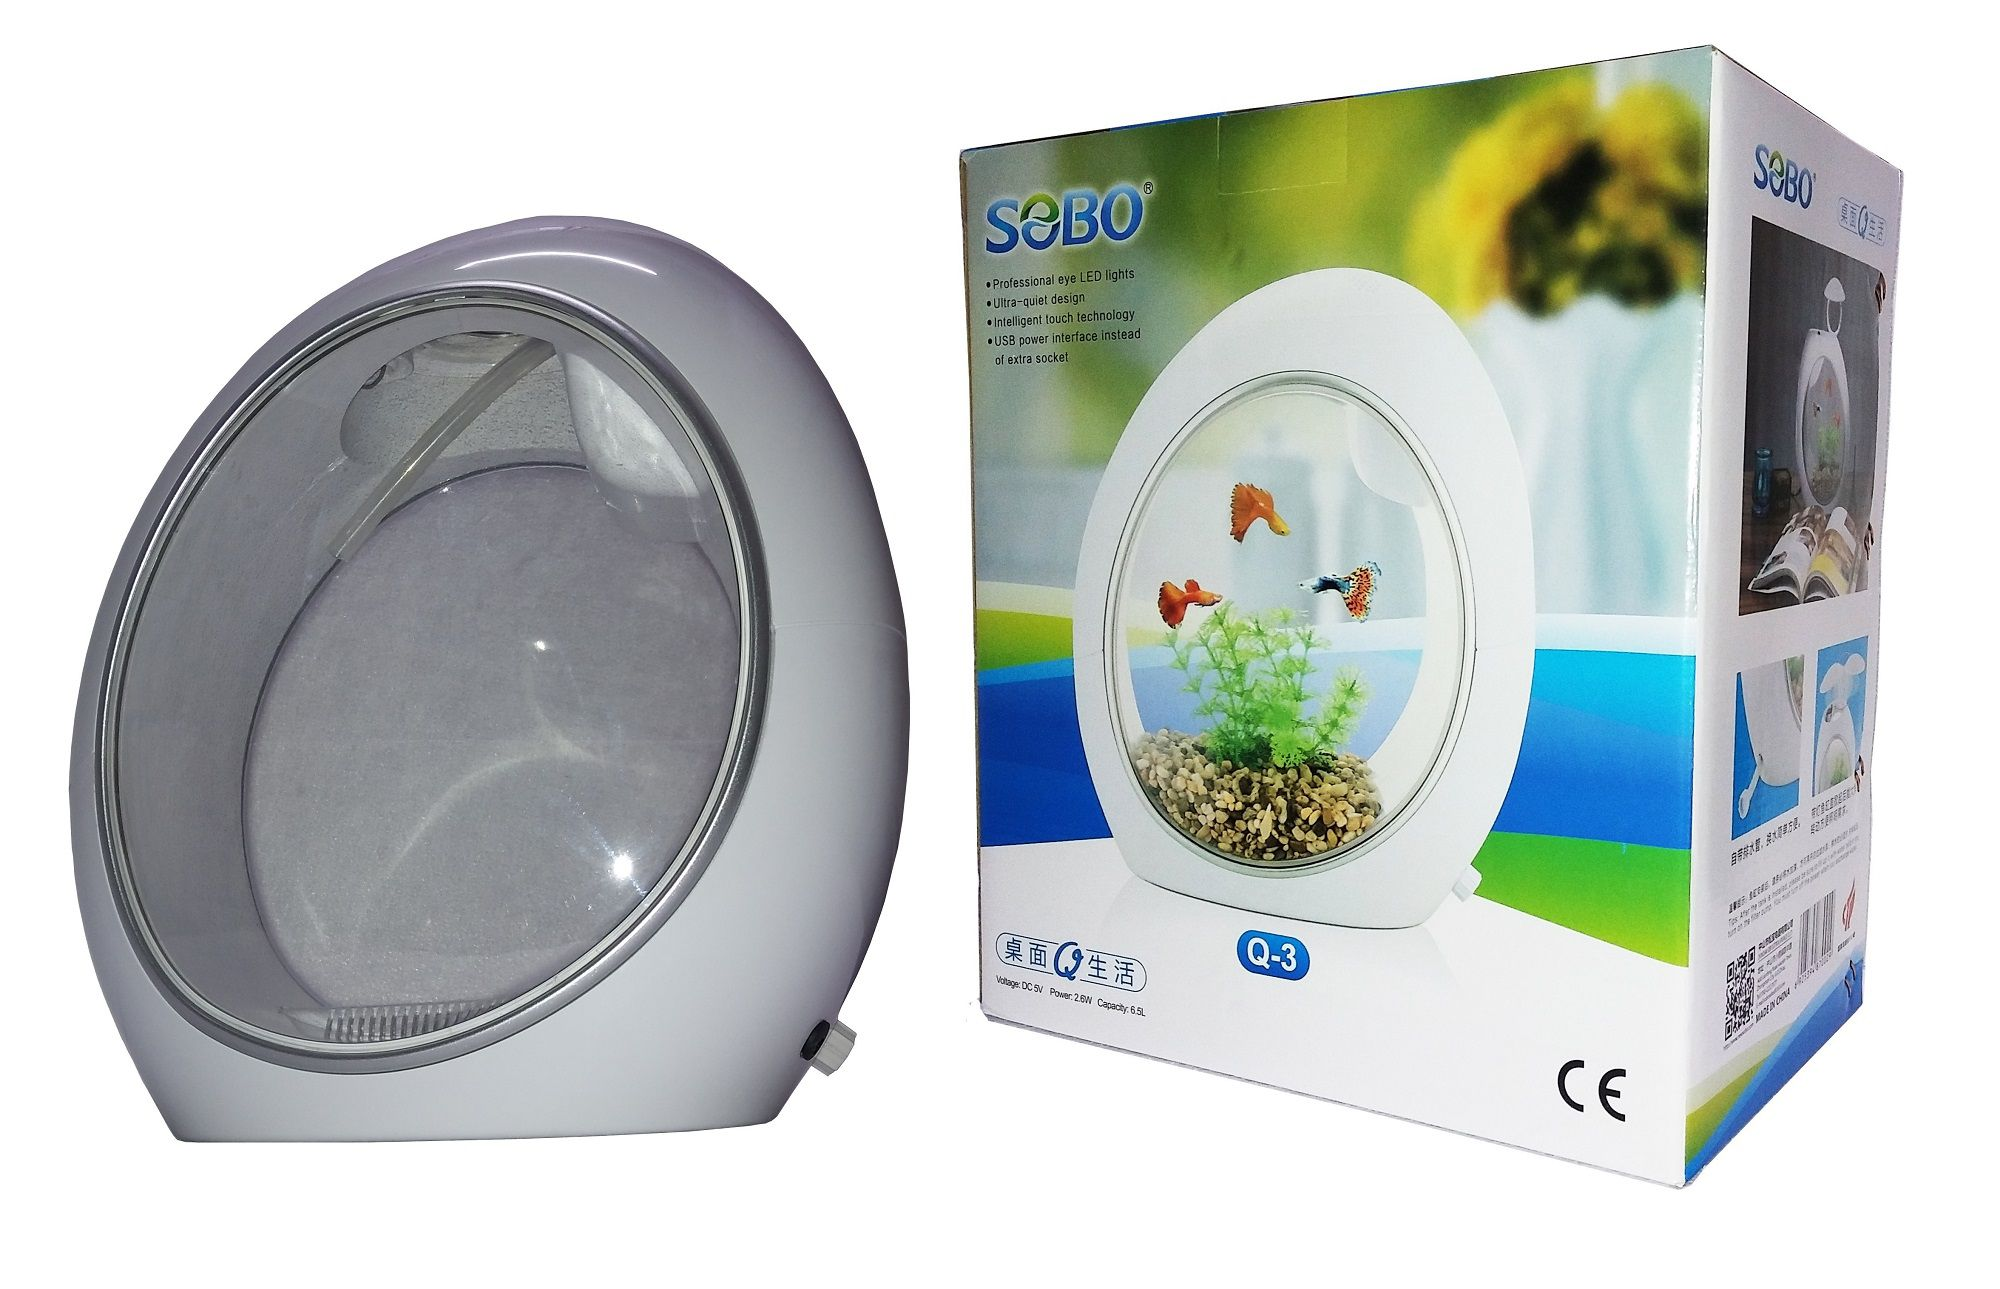 SOBO Q 3 Mini Tank 6 5L Bowls Plastic Aquarium Buy SOBO Q 3 Mini